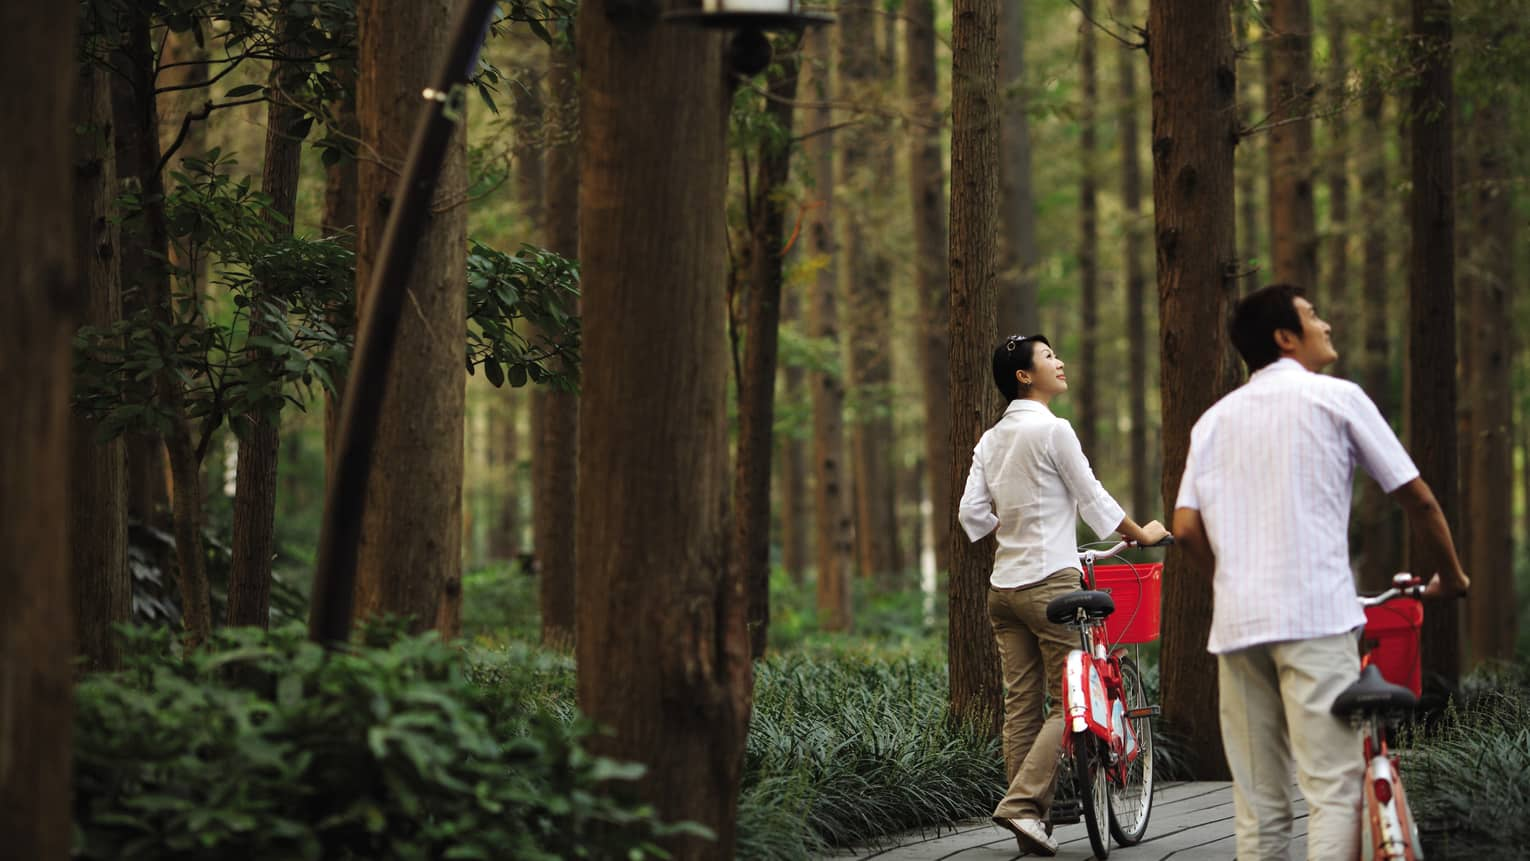 Couple walks bicycles through forest nature trail, looks up at trees